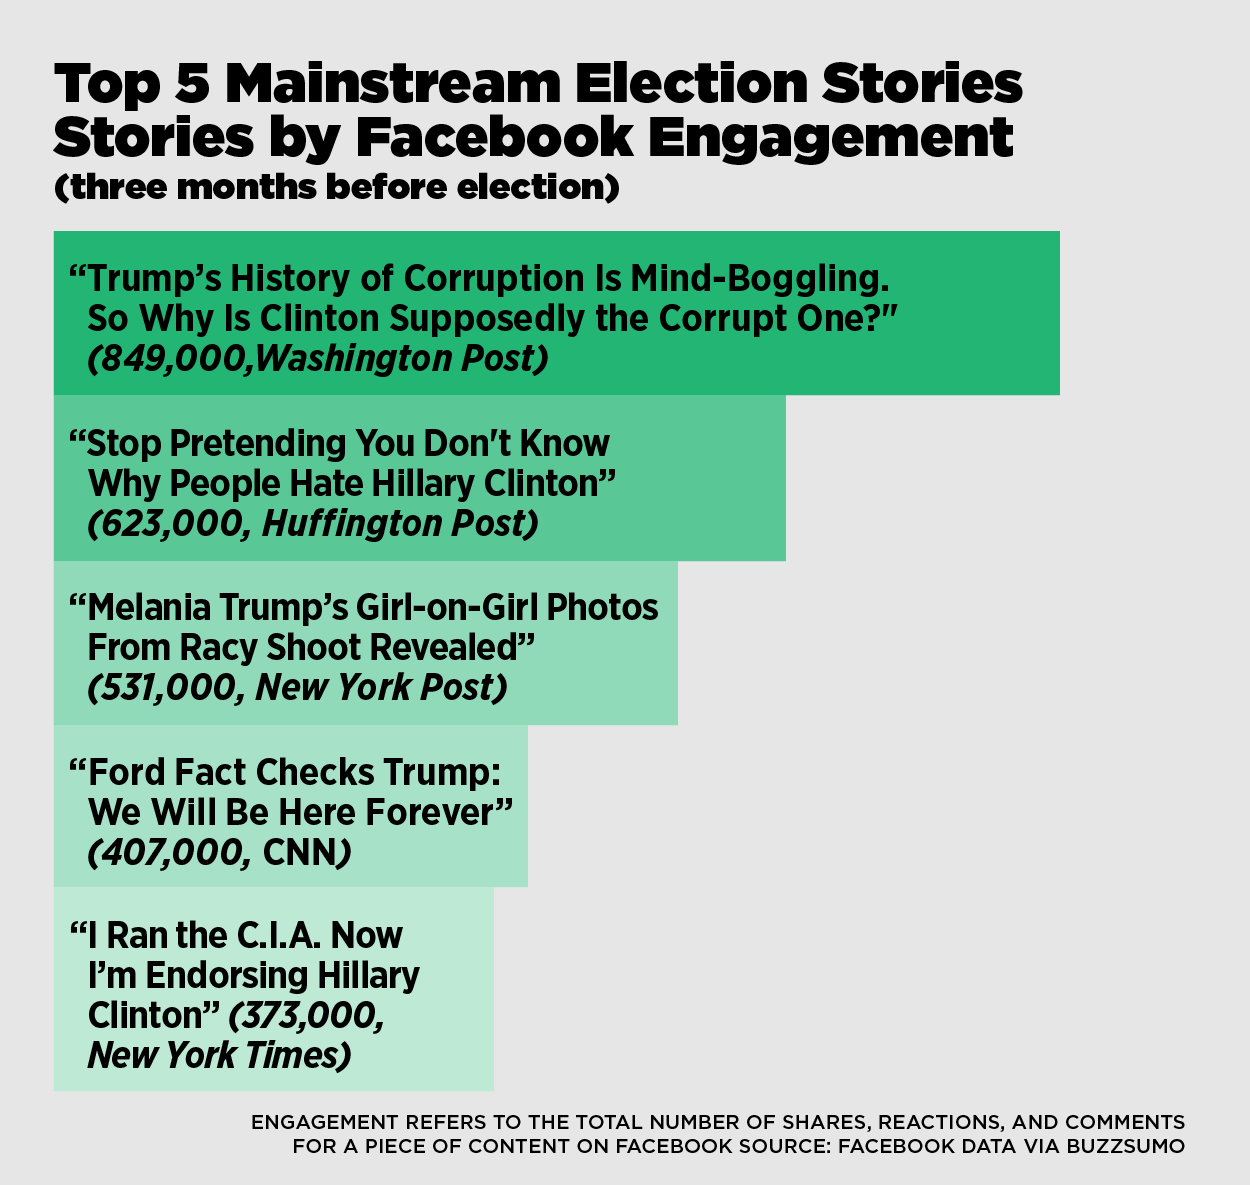 Viral News News And Photos: This Analysis Shows How Viral Fake Election News Stories